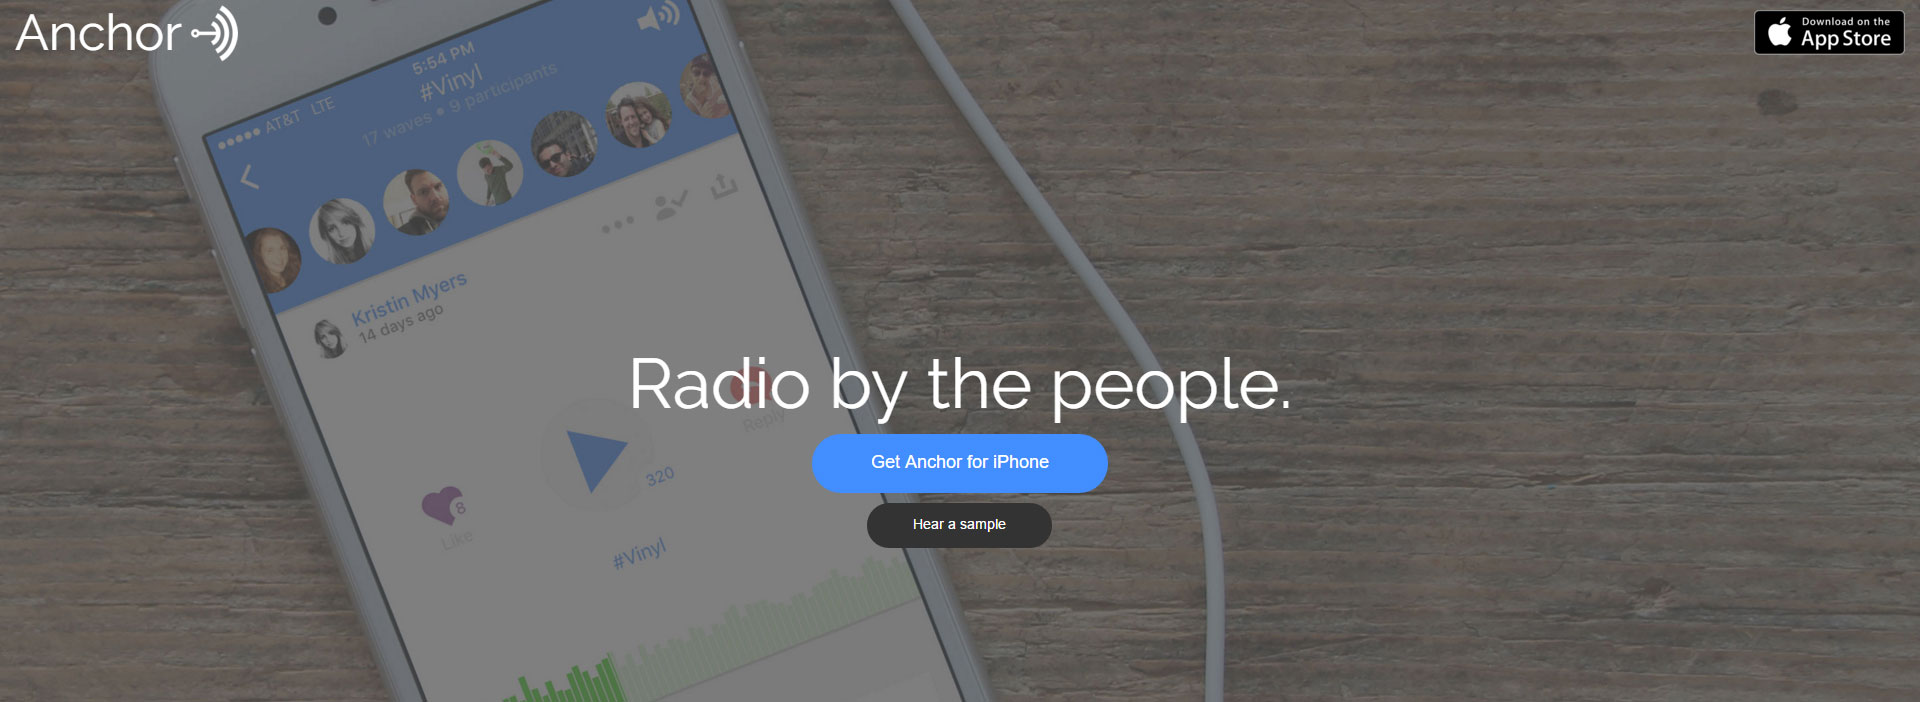 New Social Network Anchor is Something You Should Pay Attention To